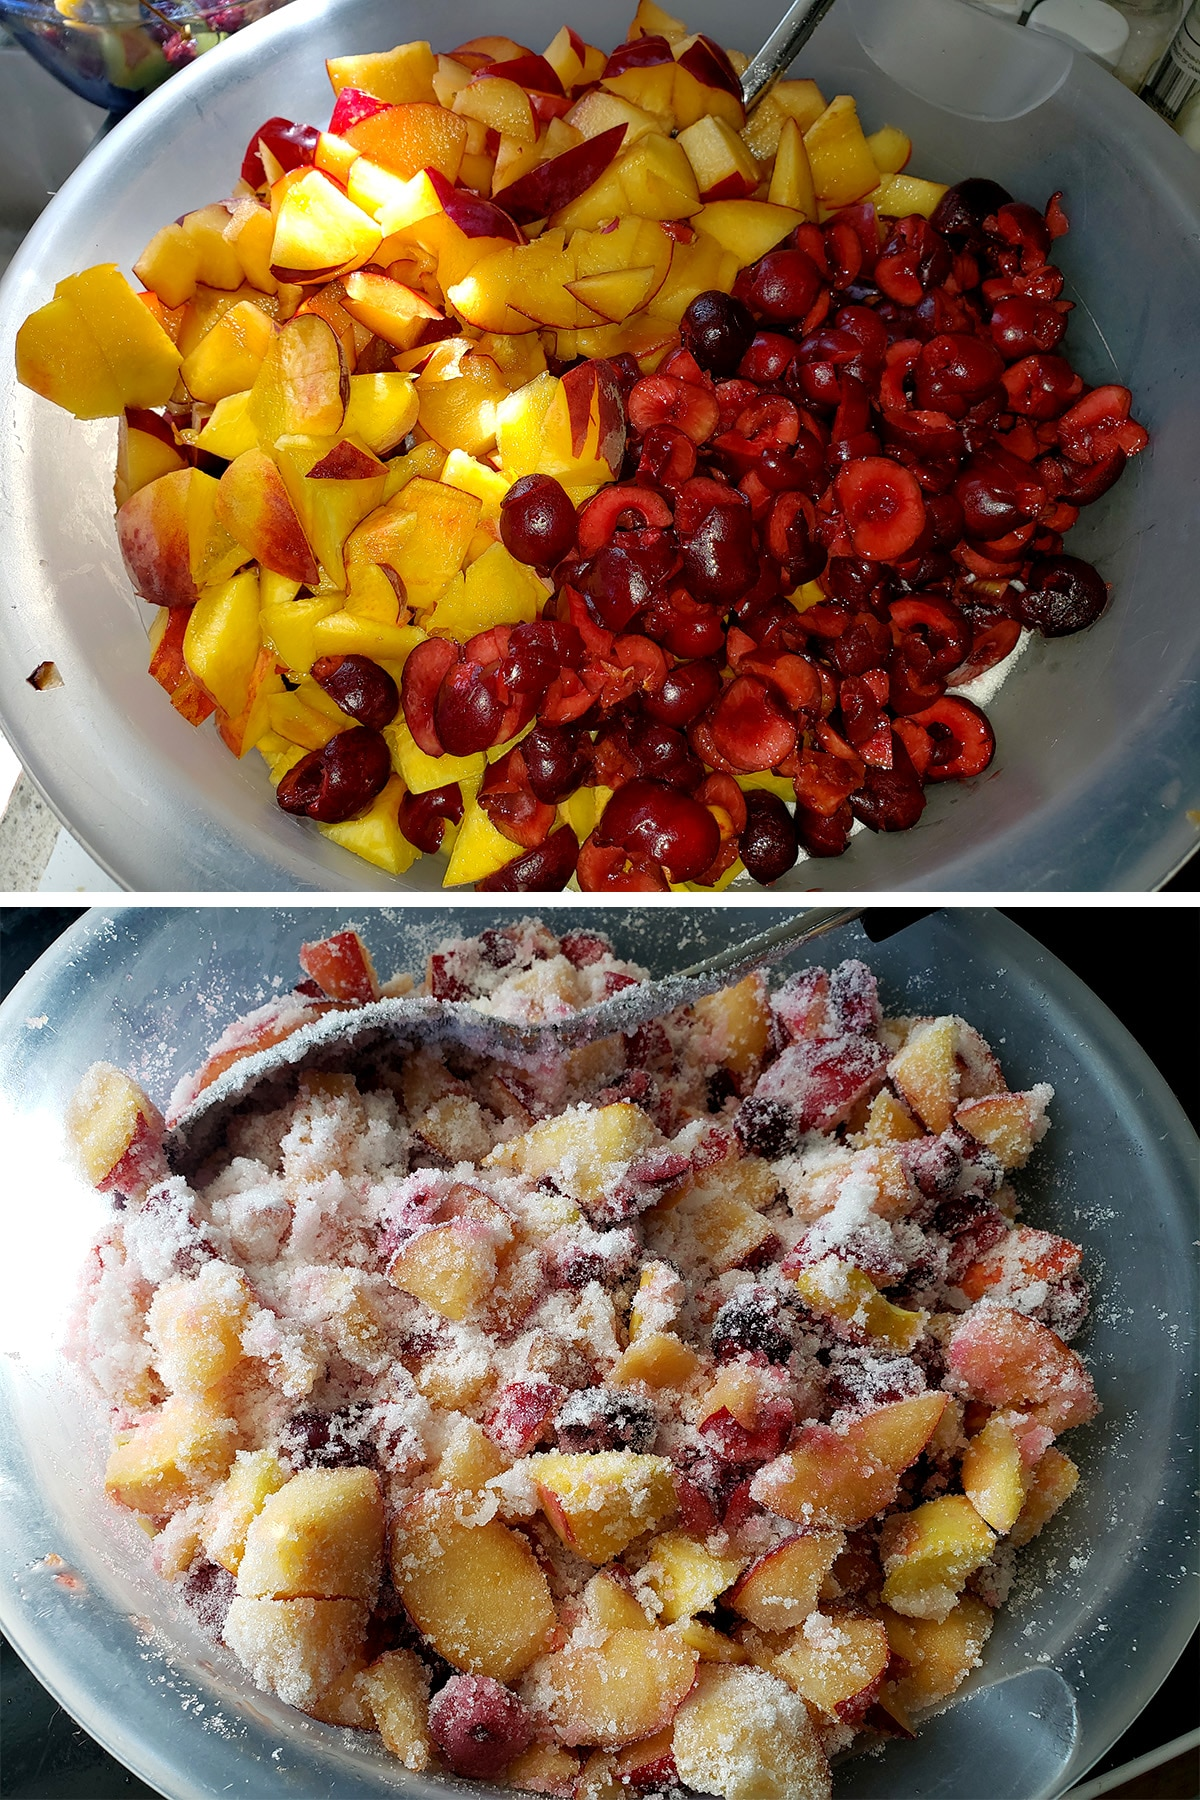 A bowl of cut up stone fruits, with sugar being stirred in.